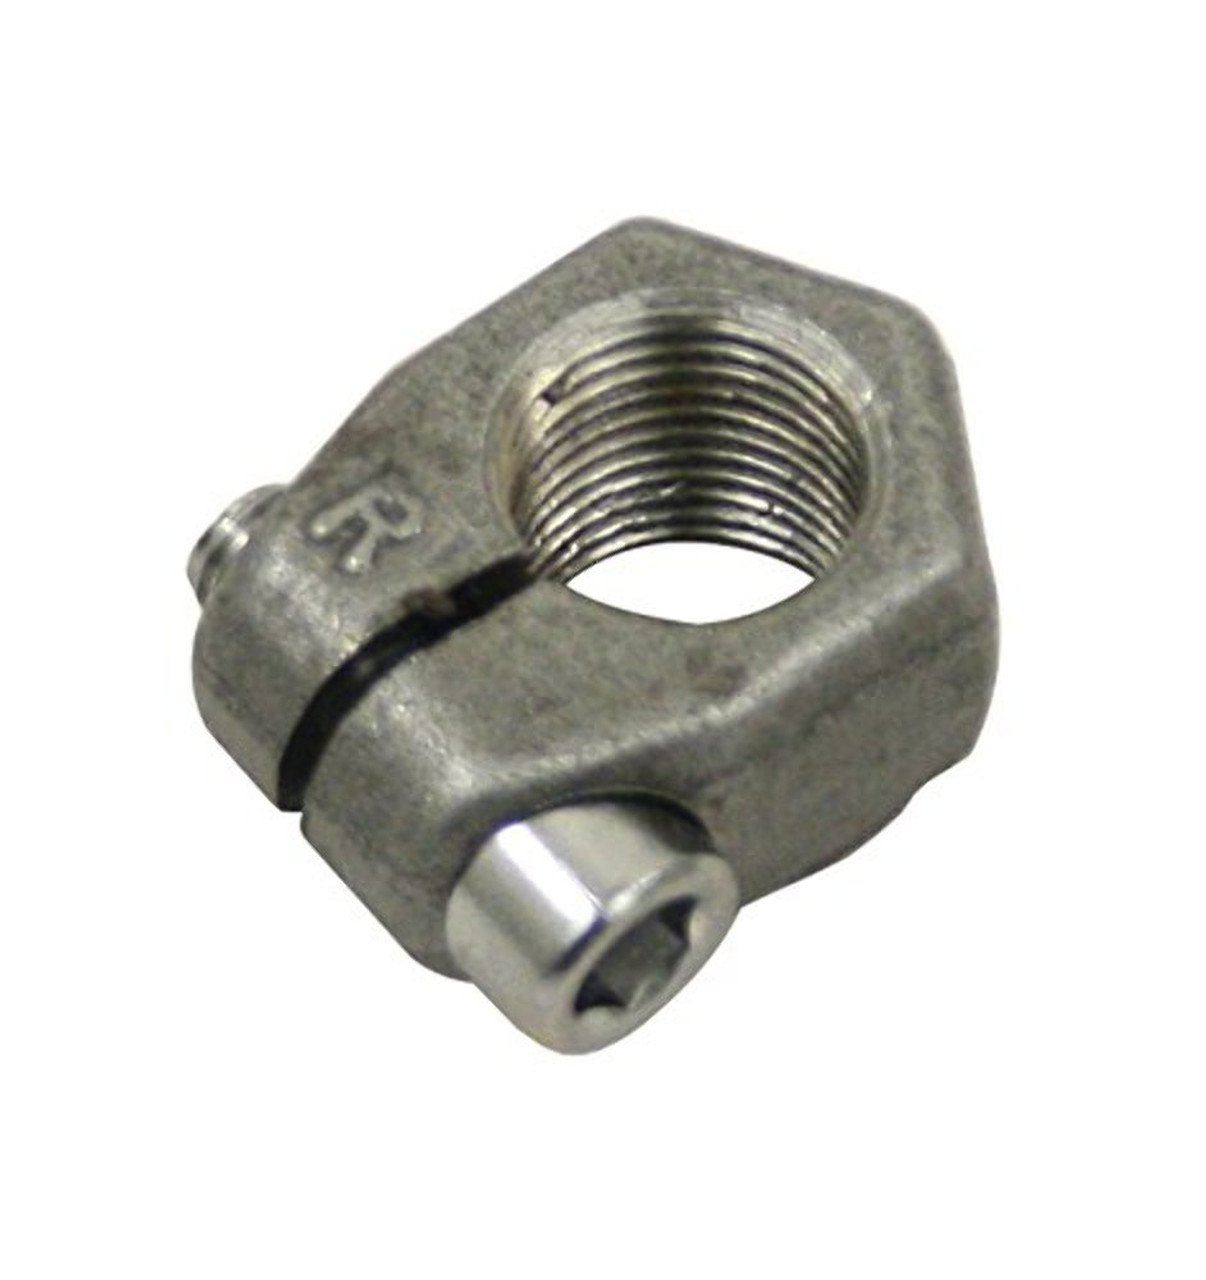 BALL JOINT SPINDLE NUT, RIGHT, dune buggy vw baja bug